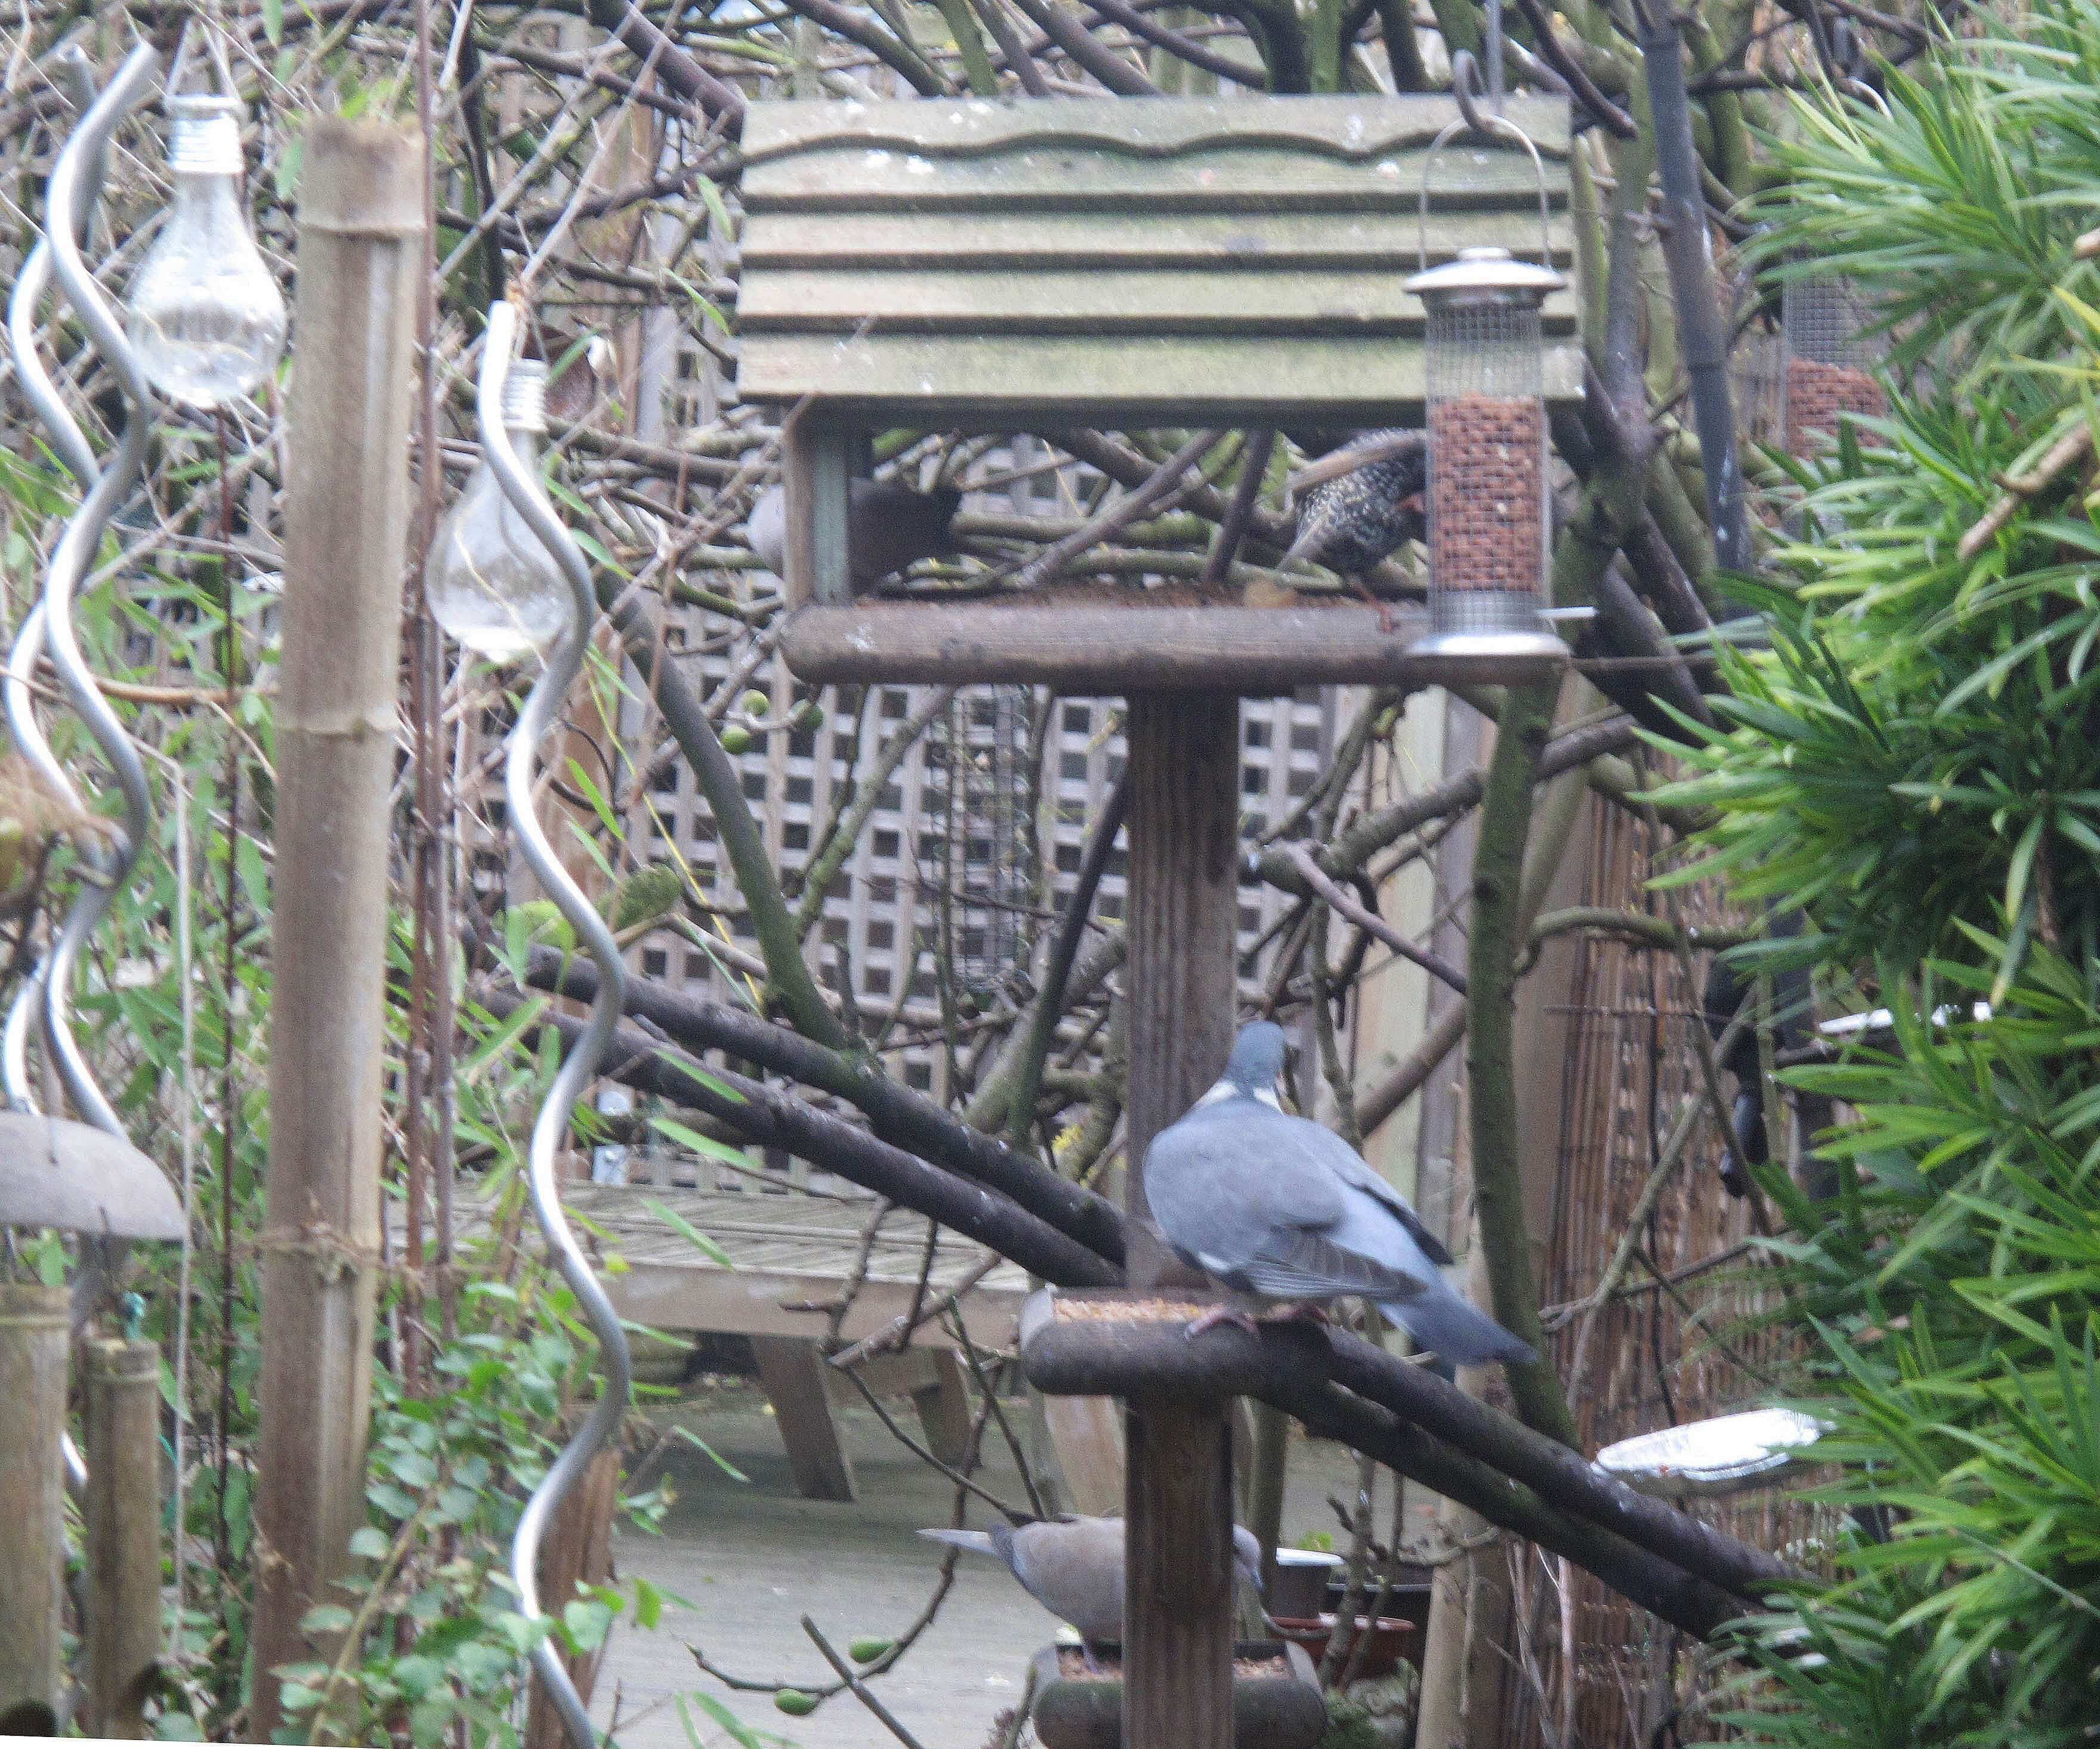 pigeons and starling on bird feeder